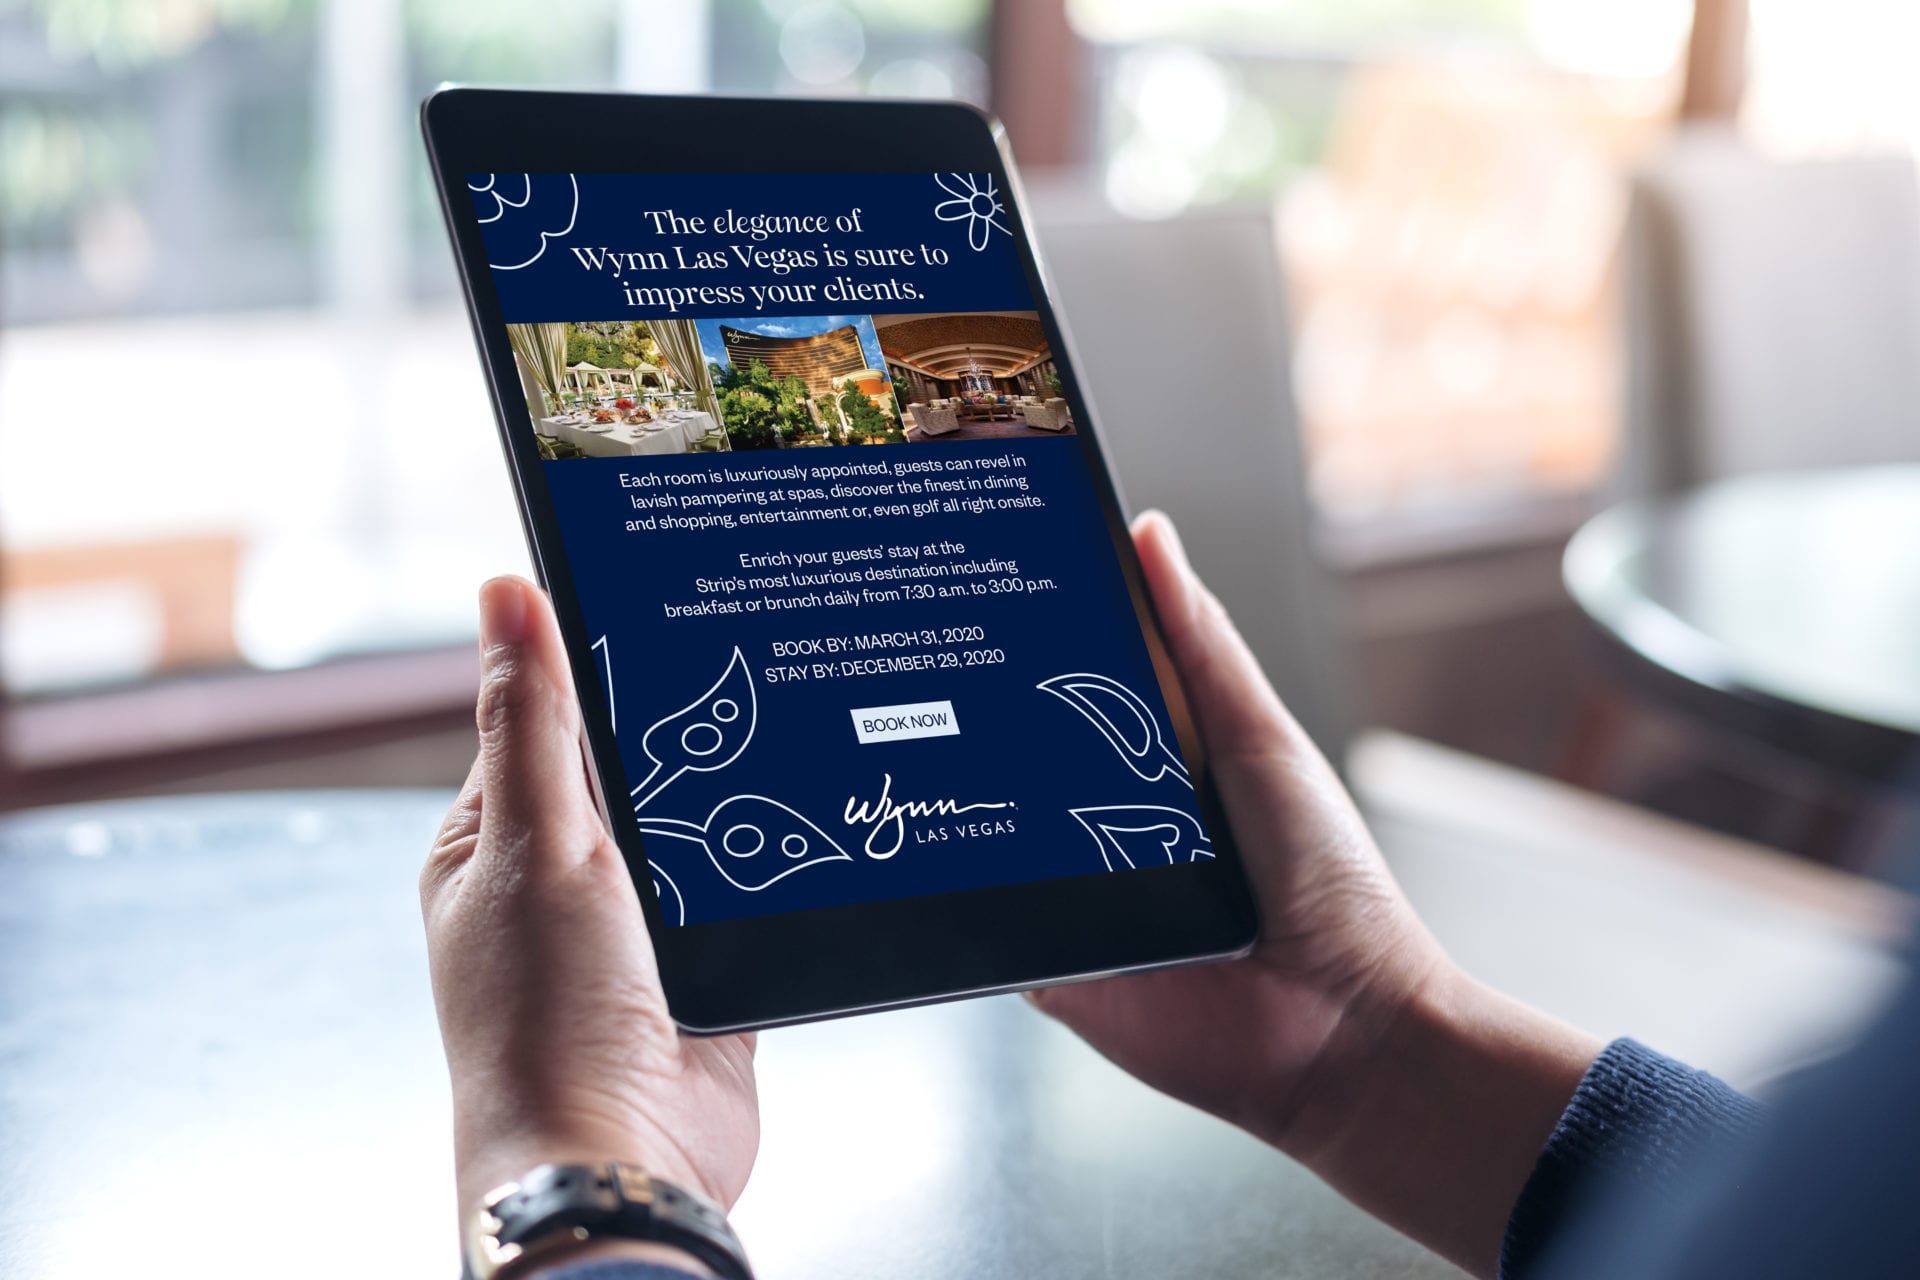 Digital advertising for the Wynn Las Vegas on a tablet, designed by Canyon Creative